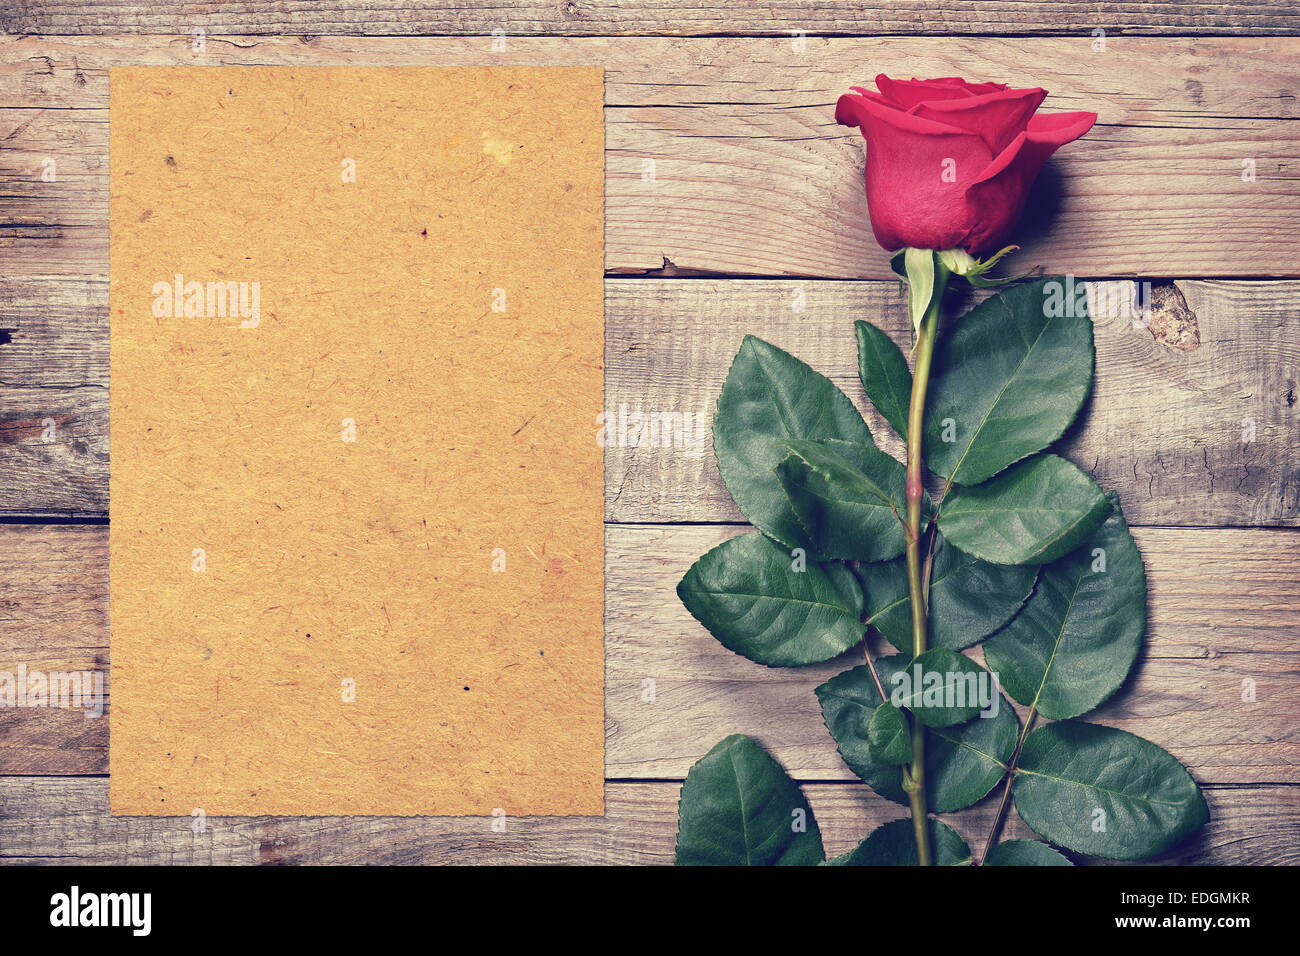 Vintage rose and blank paper on old wooden background - Stock Image